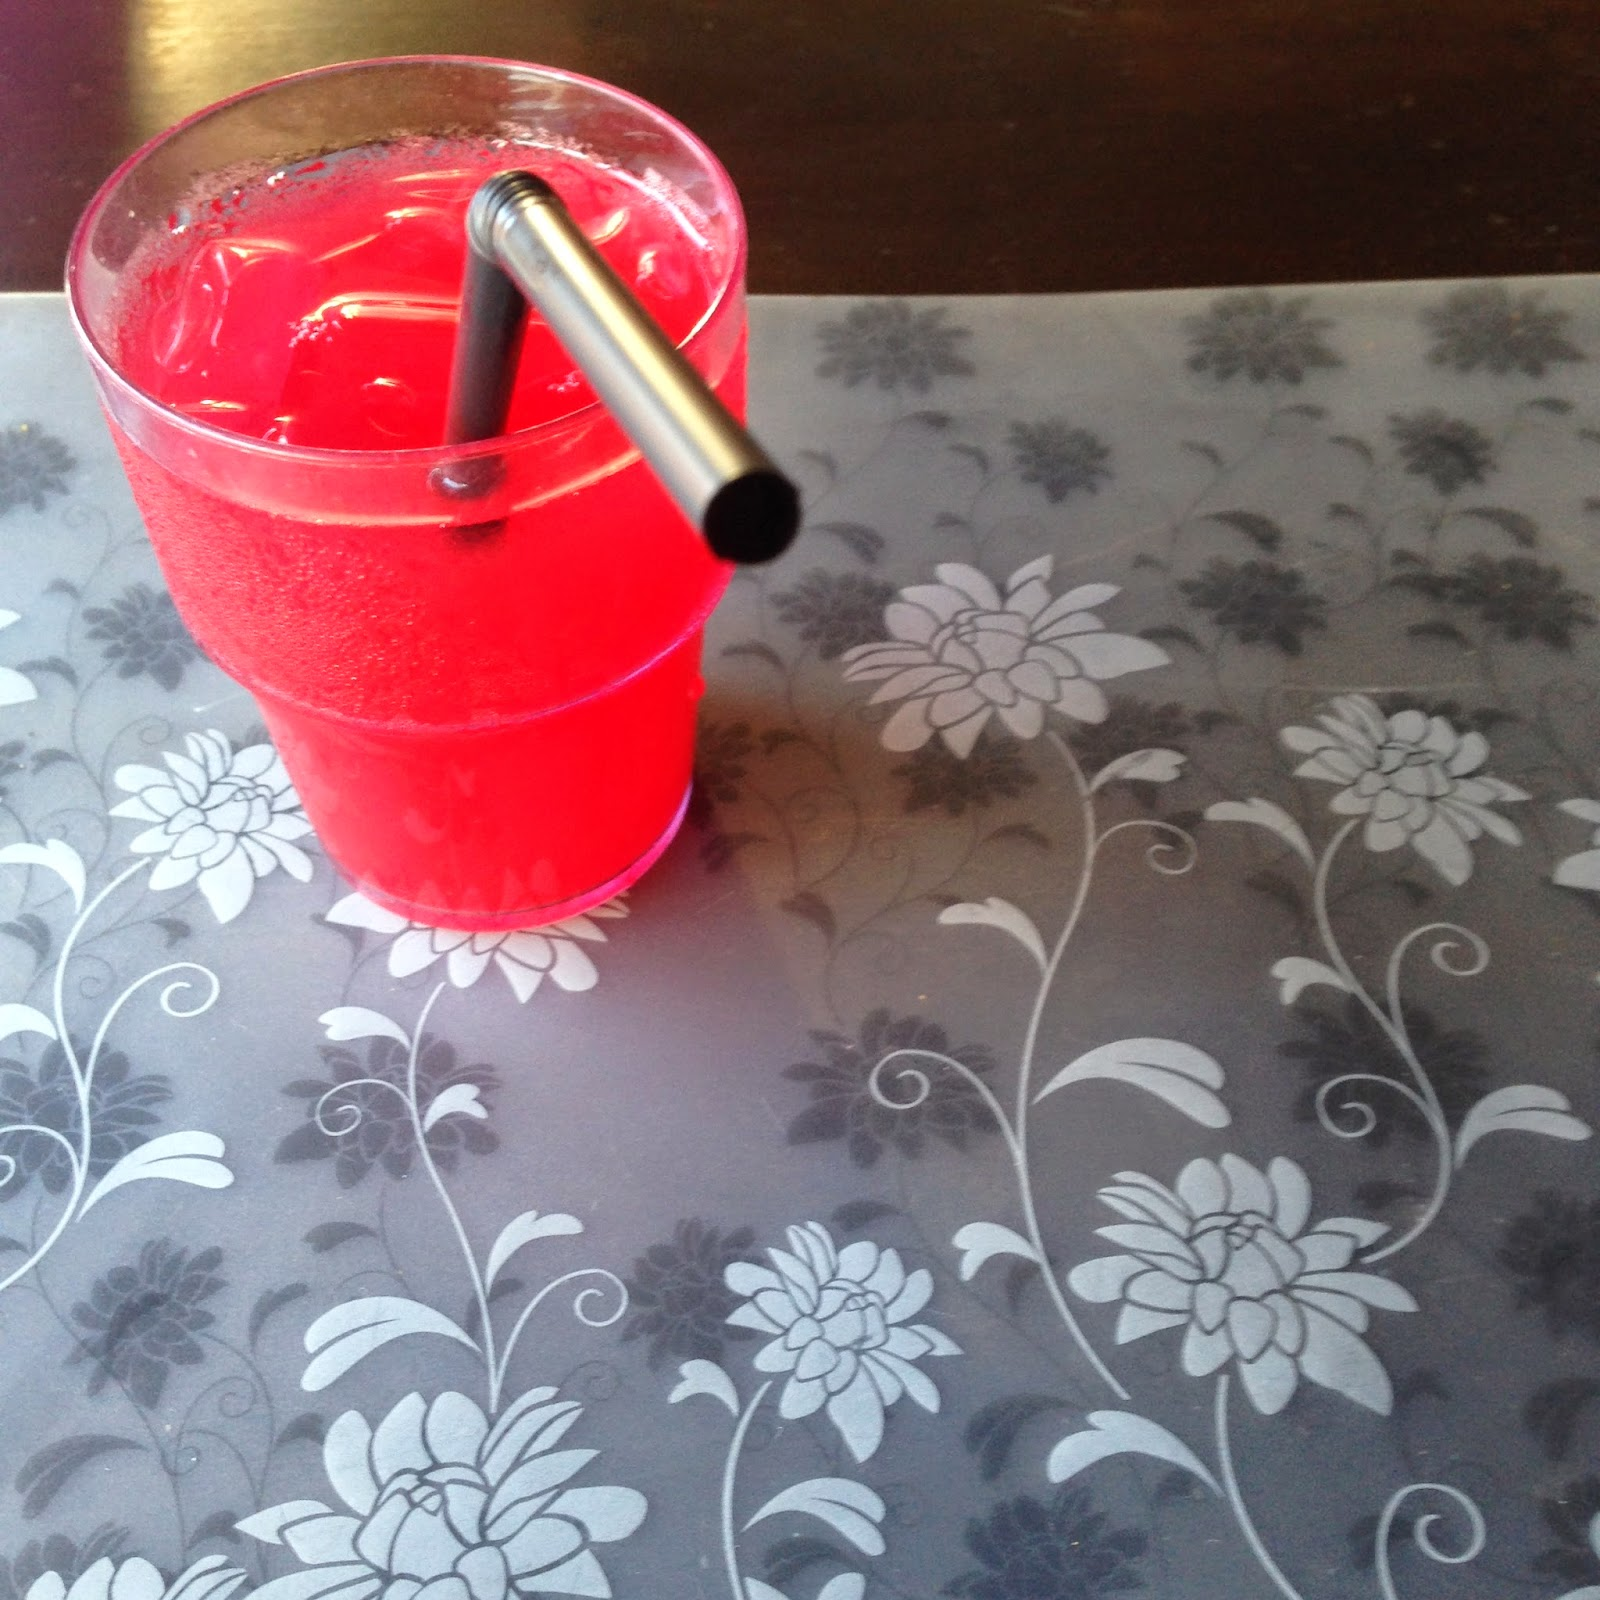 Ridel Hotel's welcome drink at Shark Lounge